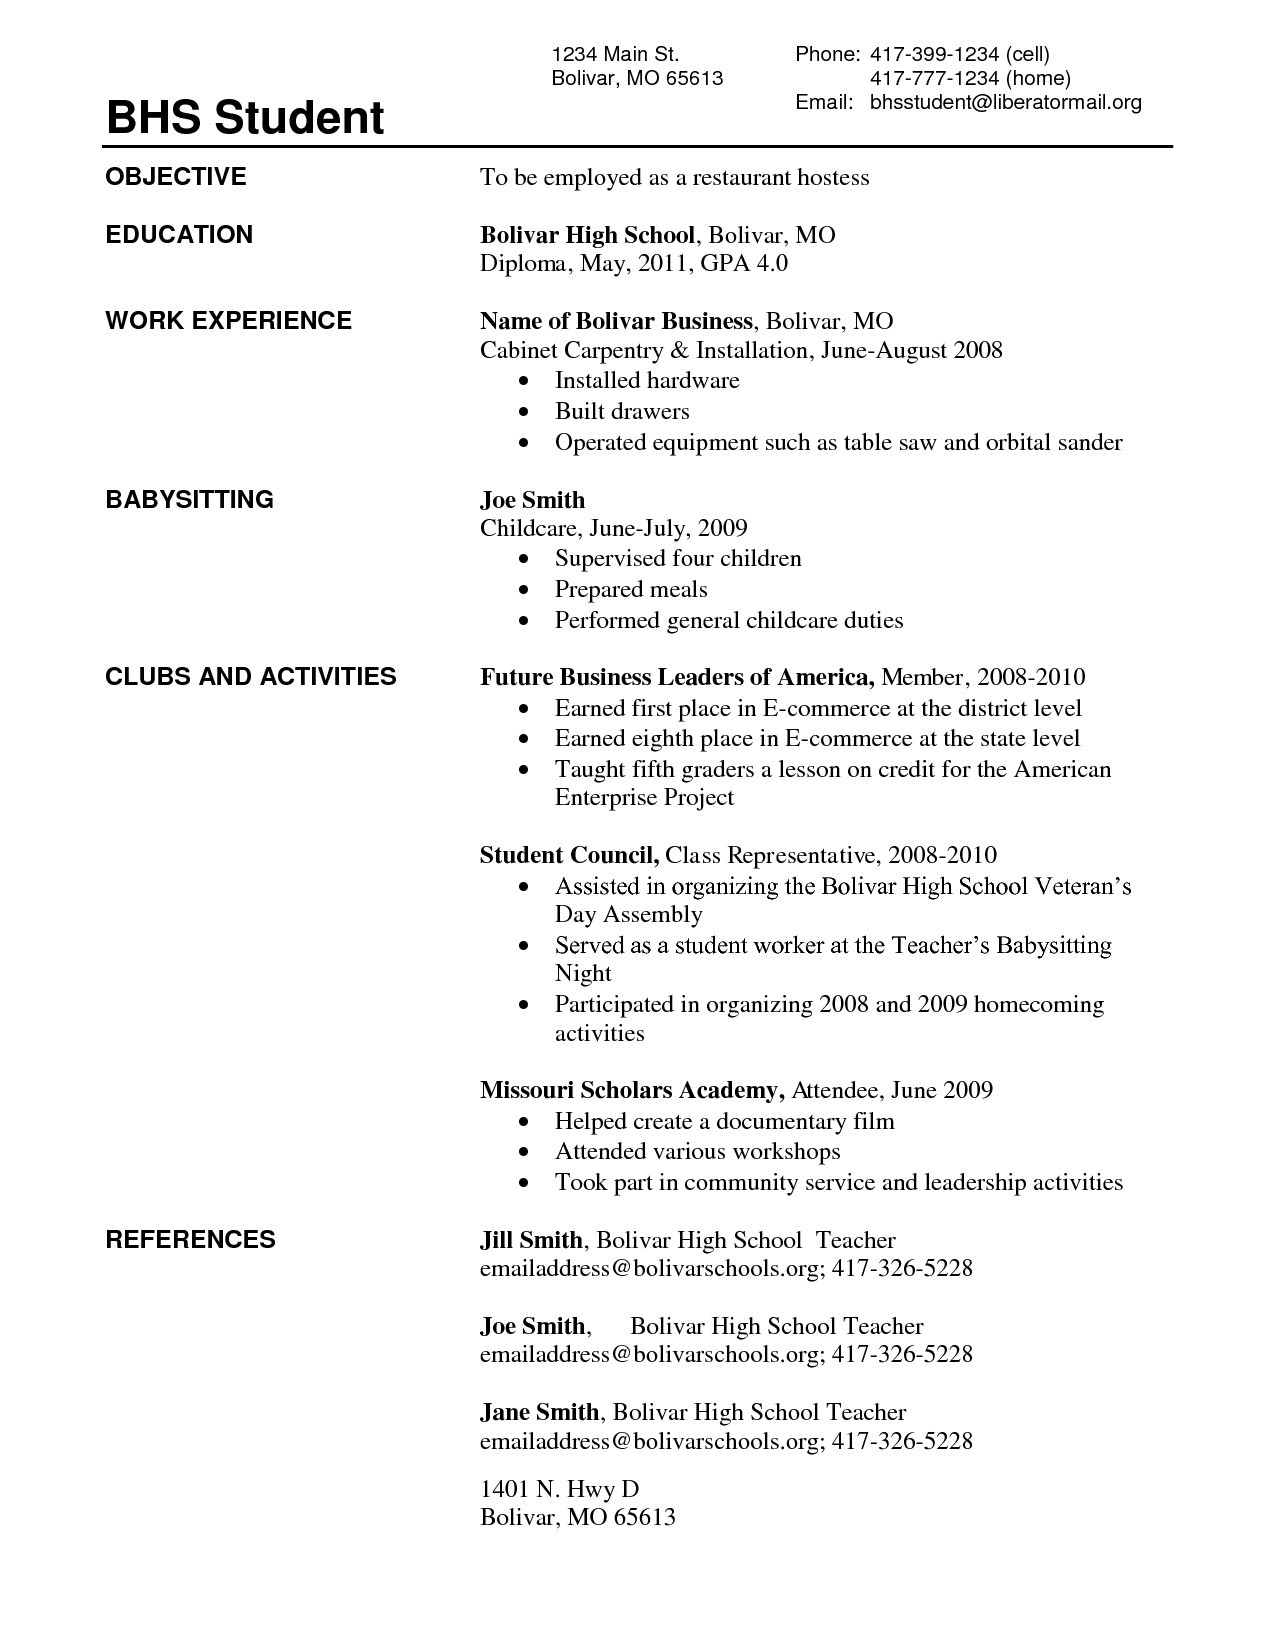 Resume for someone with No Experience - Resume for No Work Experience Inspirational How to Write A Resume